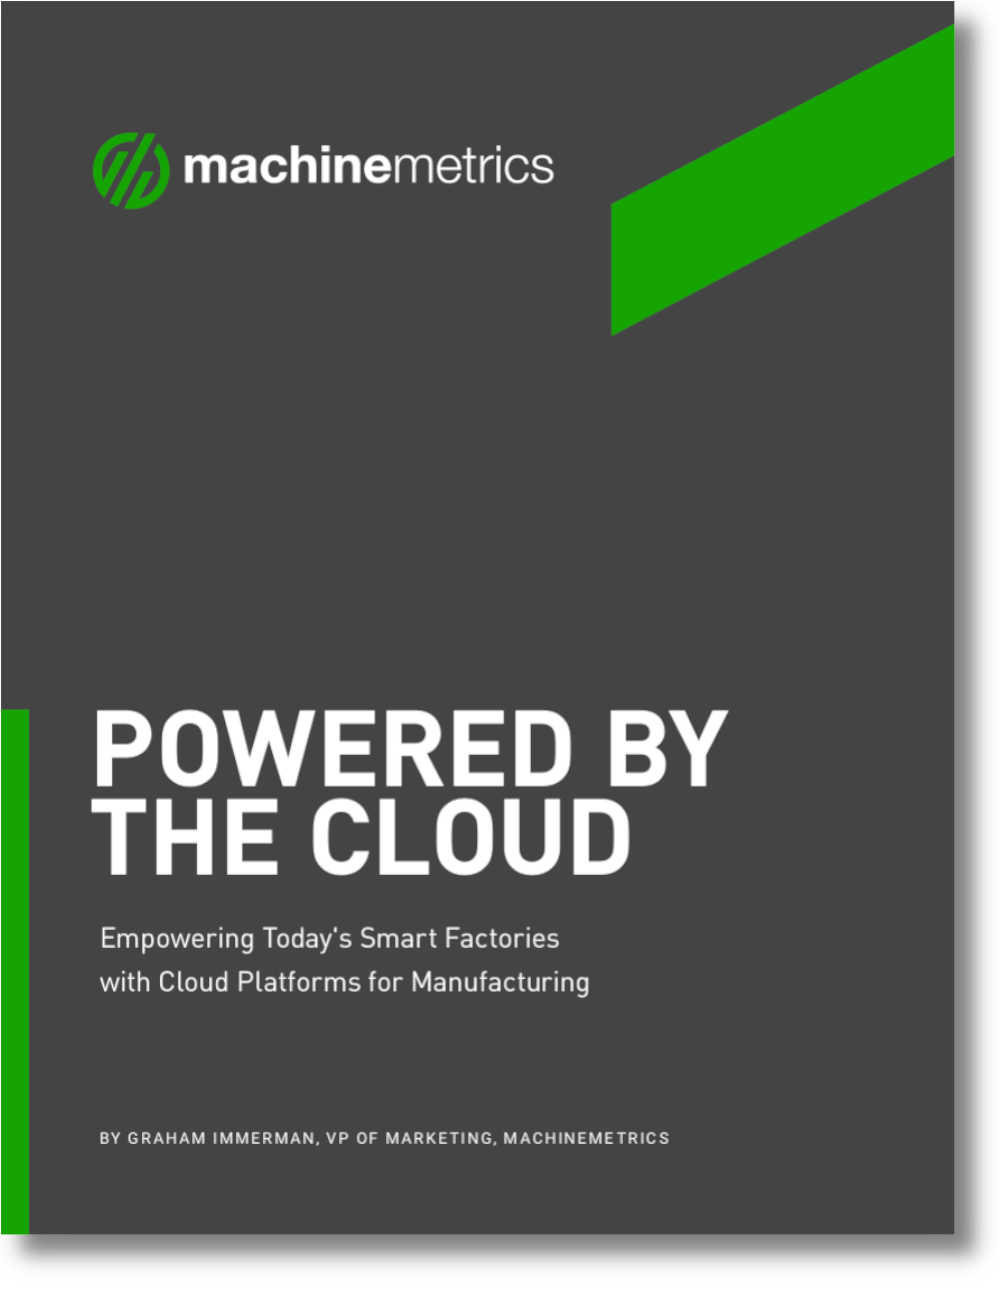 Empowering Today's Smart Factories with Cloud Platforms for Manufacturing